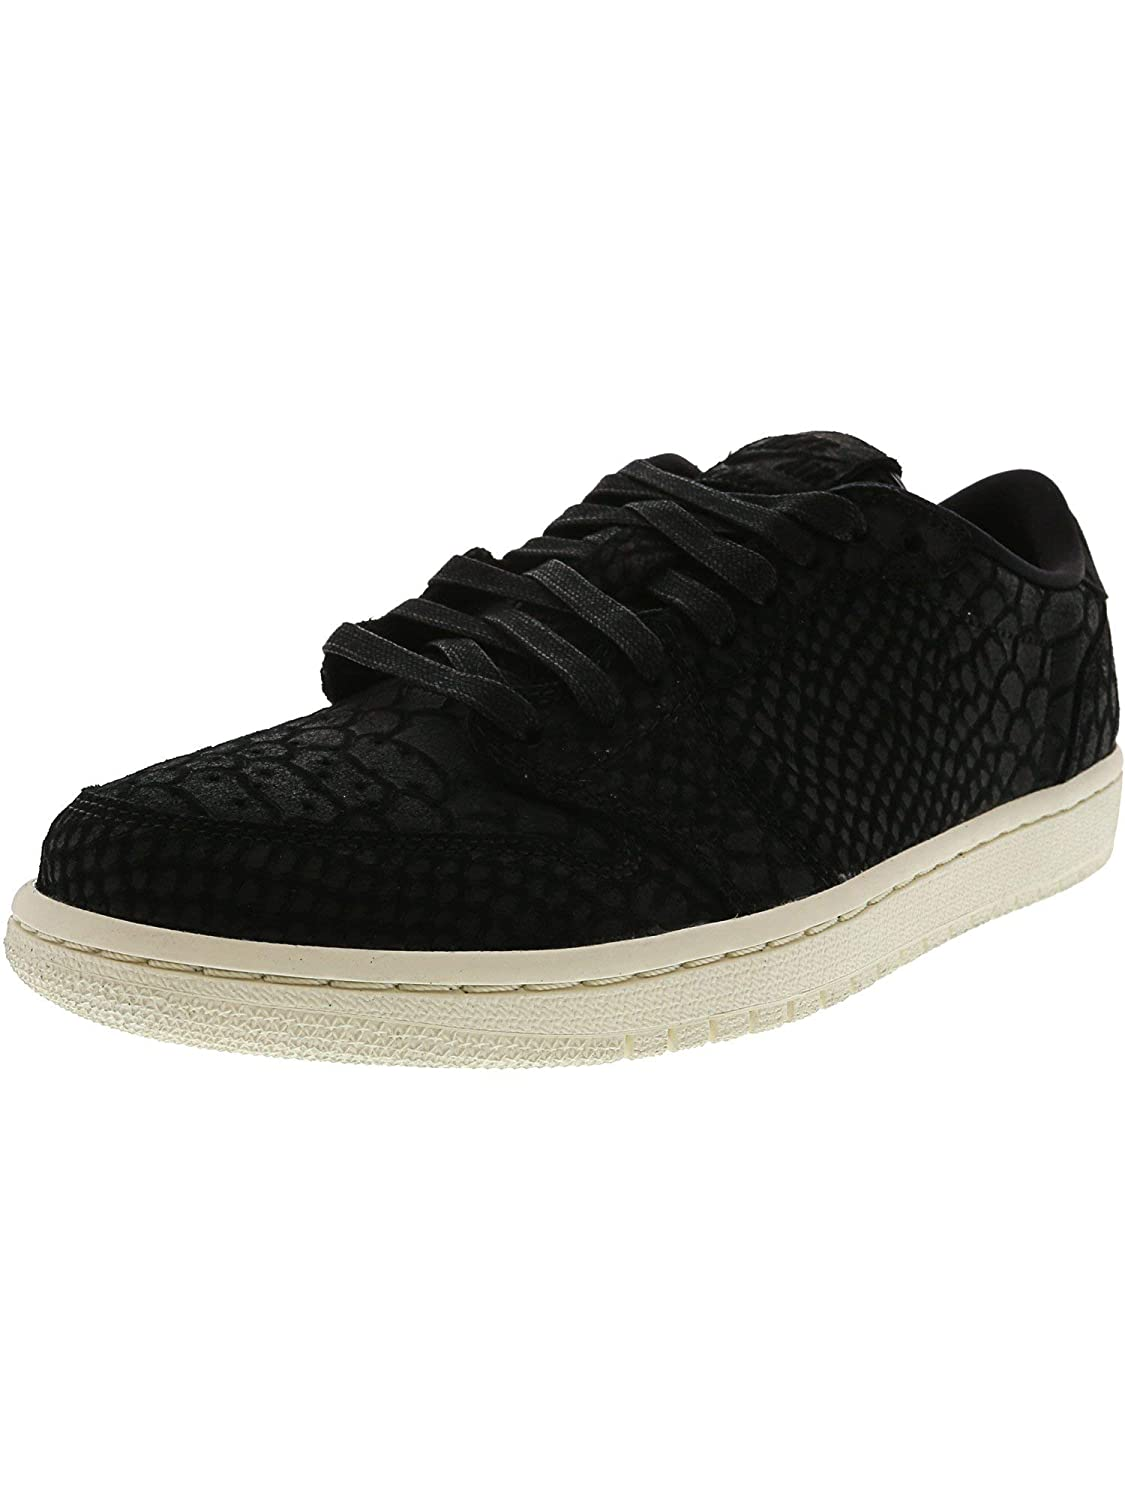 e87af6bf322b Amazon.com | NIKE Women's Air Jordan 1 Retro Low Ns Nrg Black / - Sail  Ankle-High Leather Fashion Sneaker 7M | Fashion Sneakers